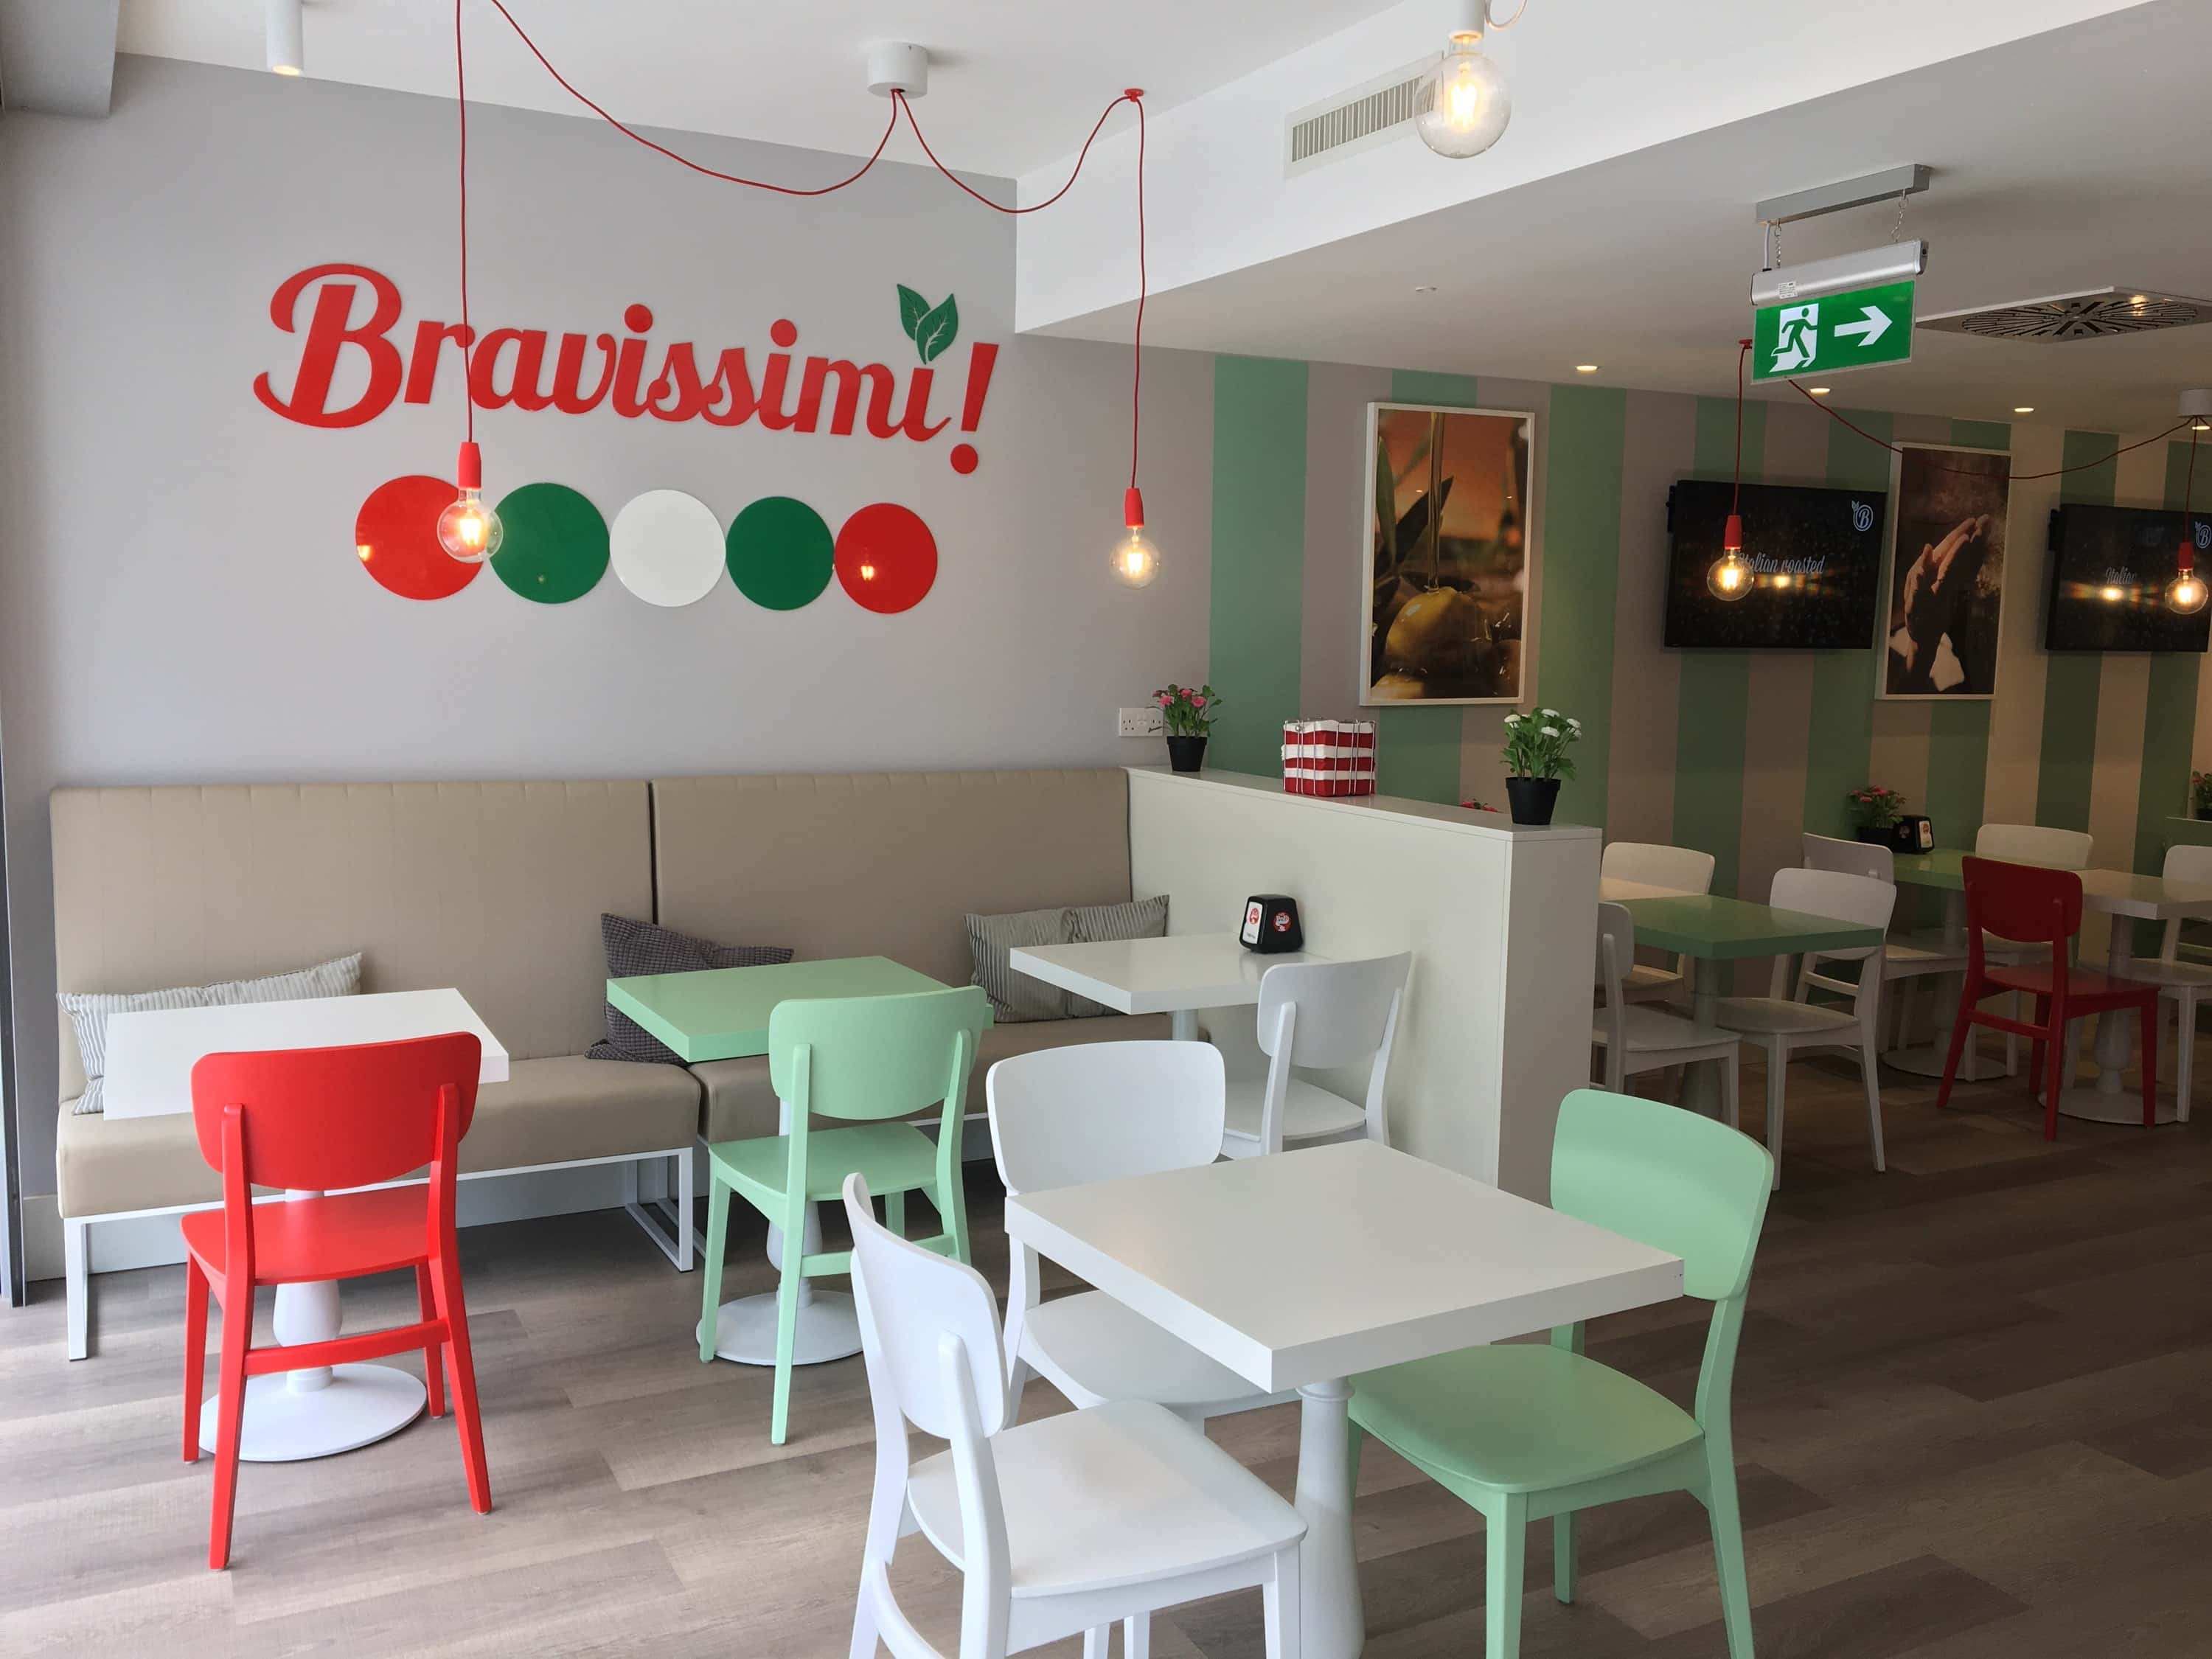 bravissimi in Manchester commercial fitting services by RCE services